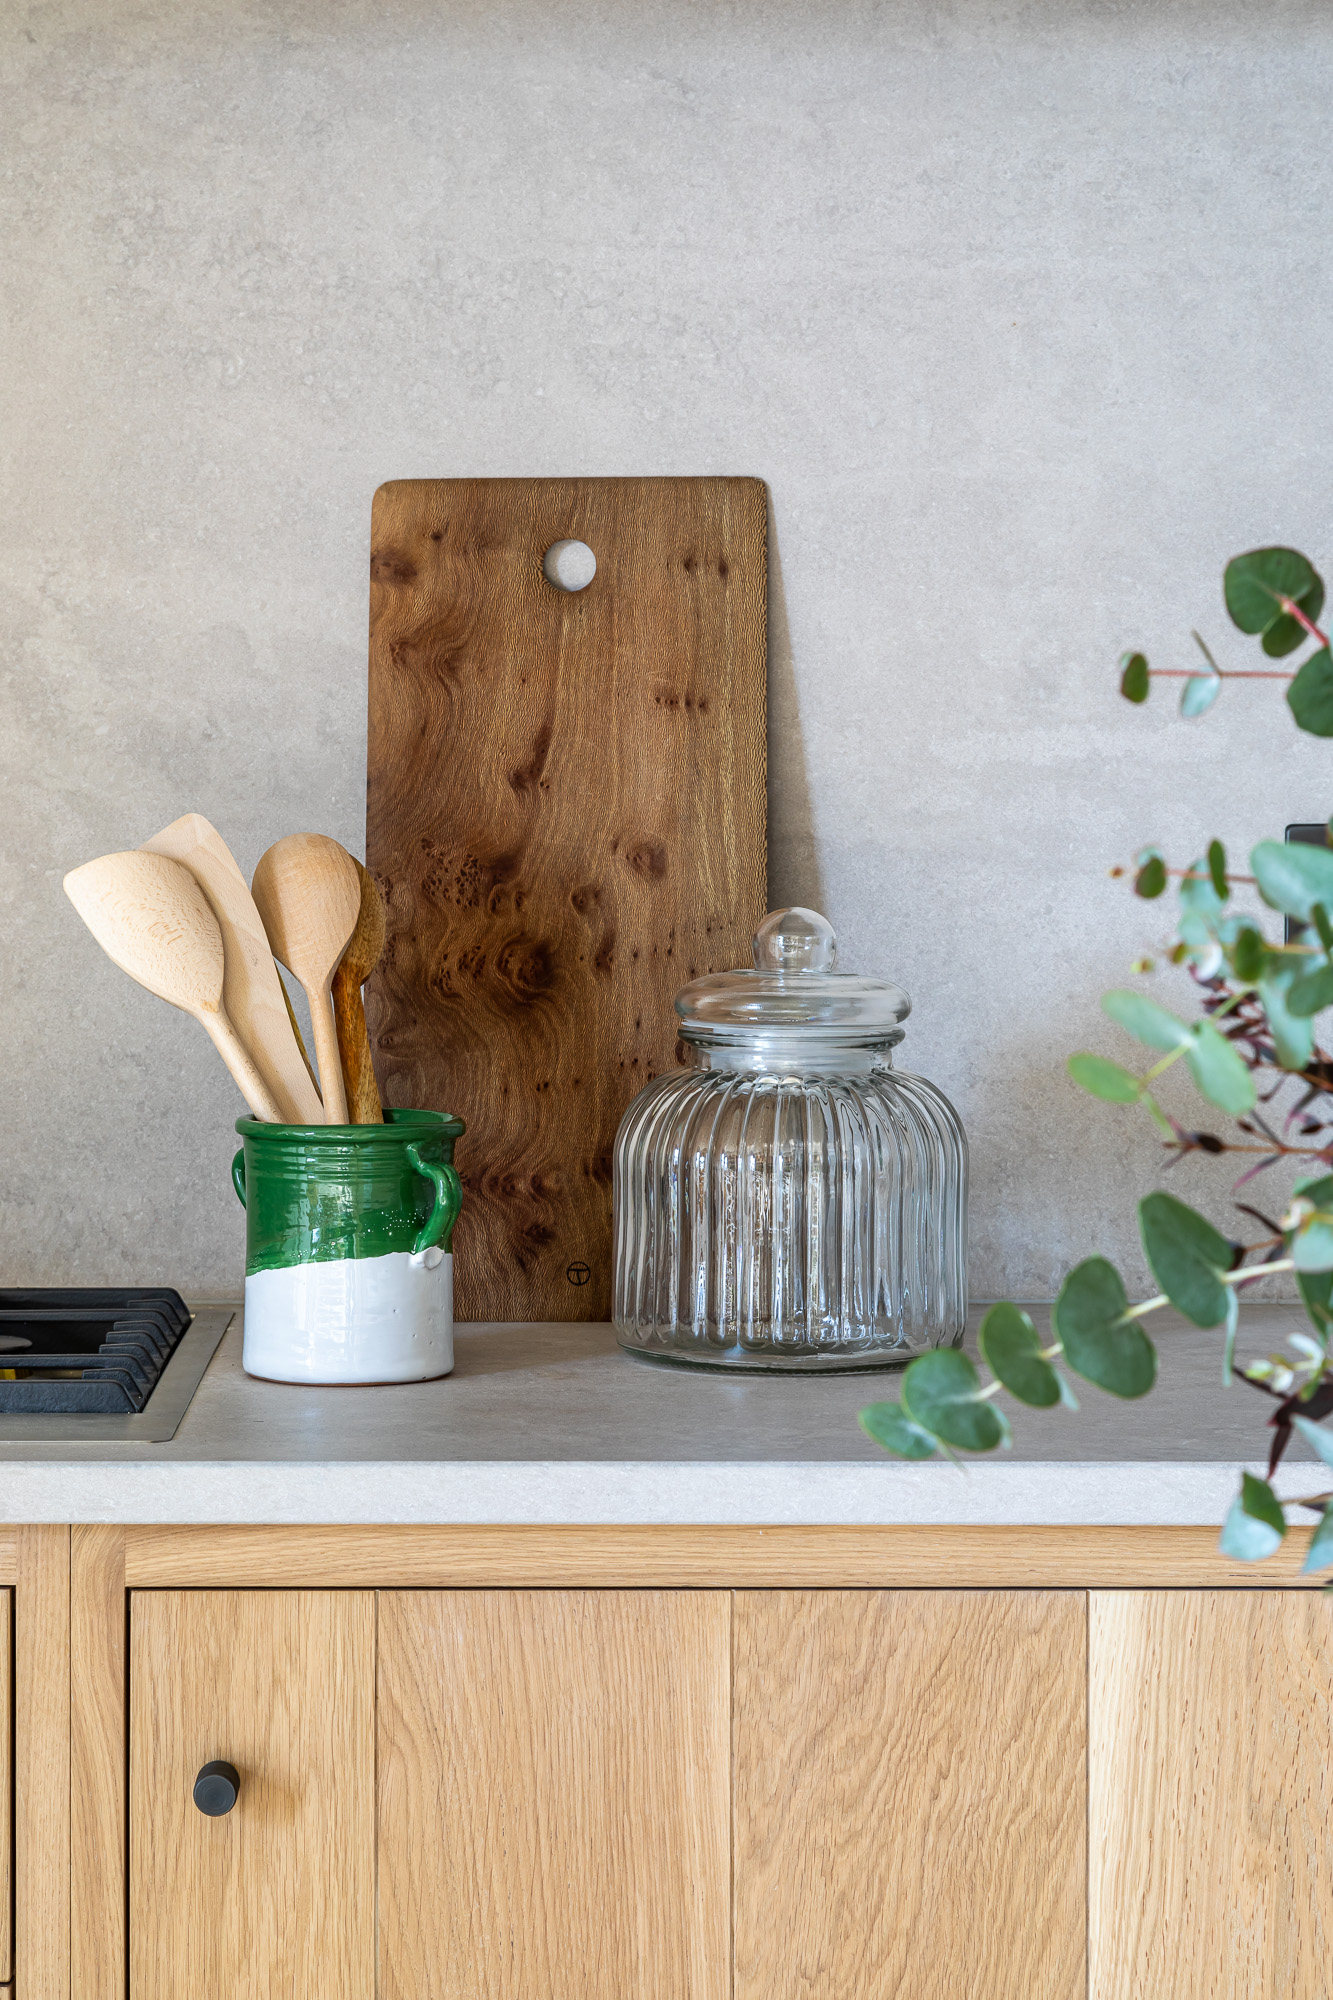 jonathan bond, interior photographer, kitchen work surface, jar, chopping board, marnhull, dorset